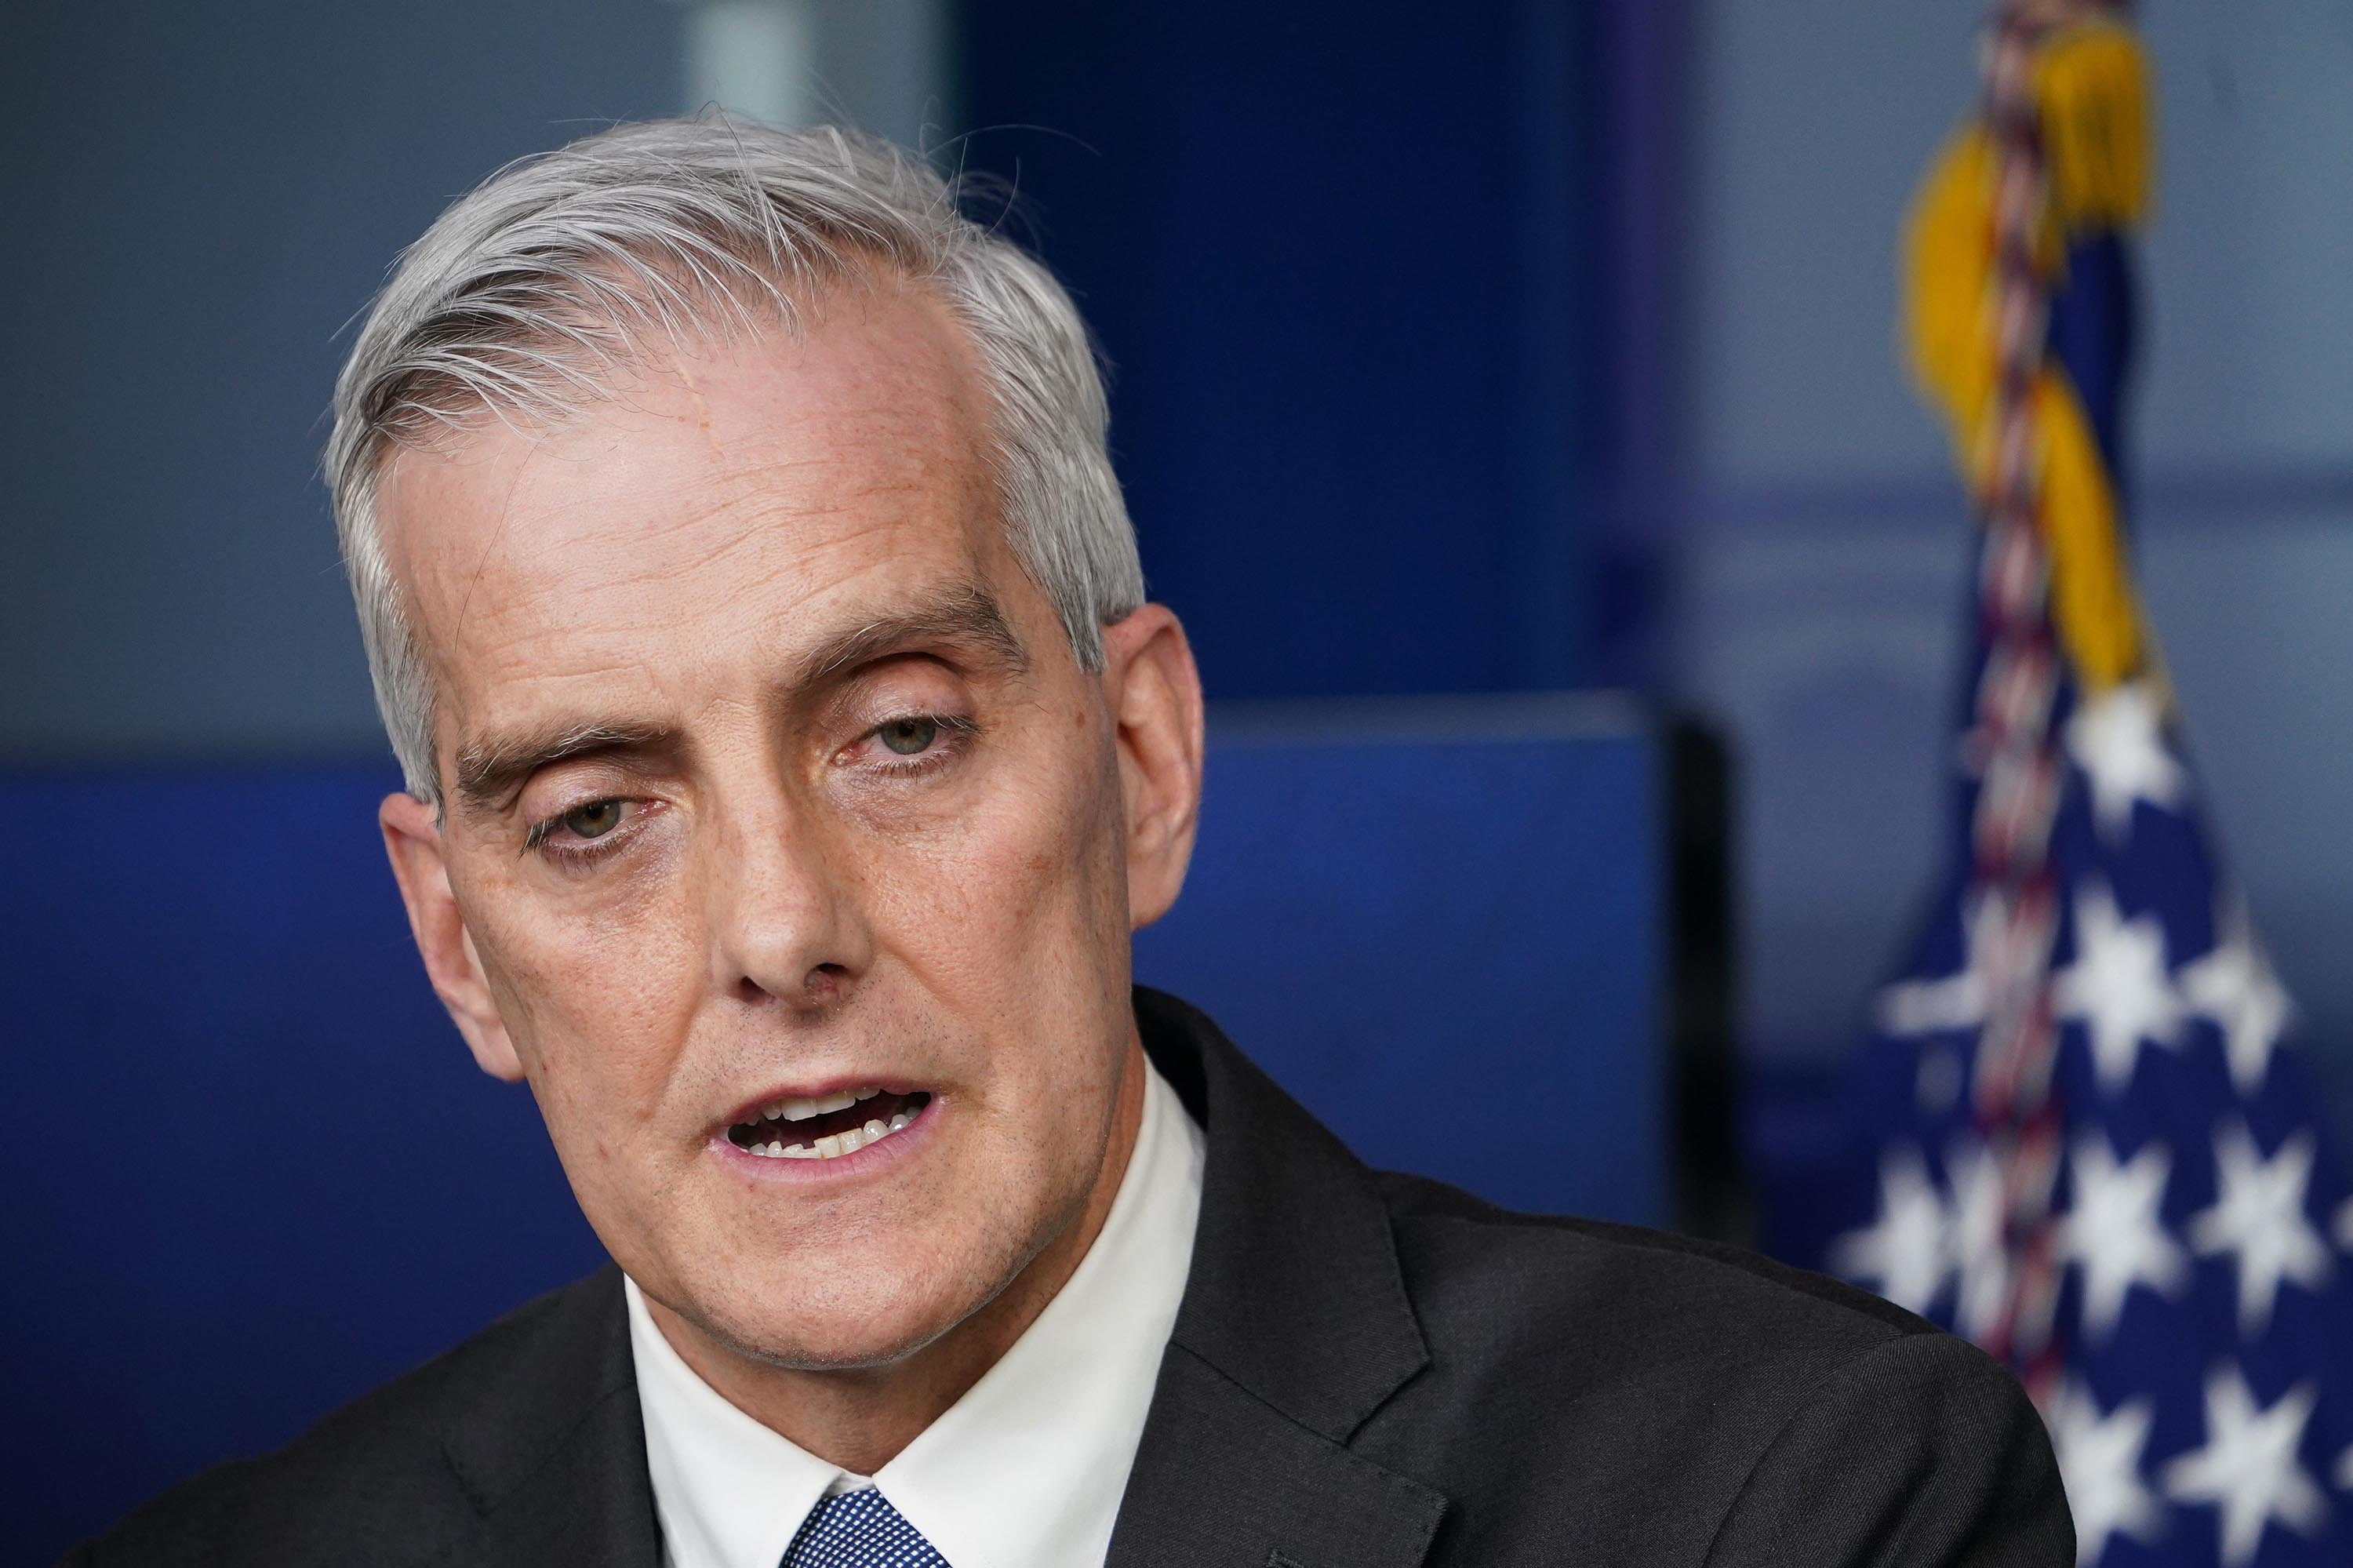 US Veterans Affairs Secretary Denis McDonough speaks during a press briefing on March 4, 2021 at the White House.